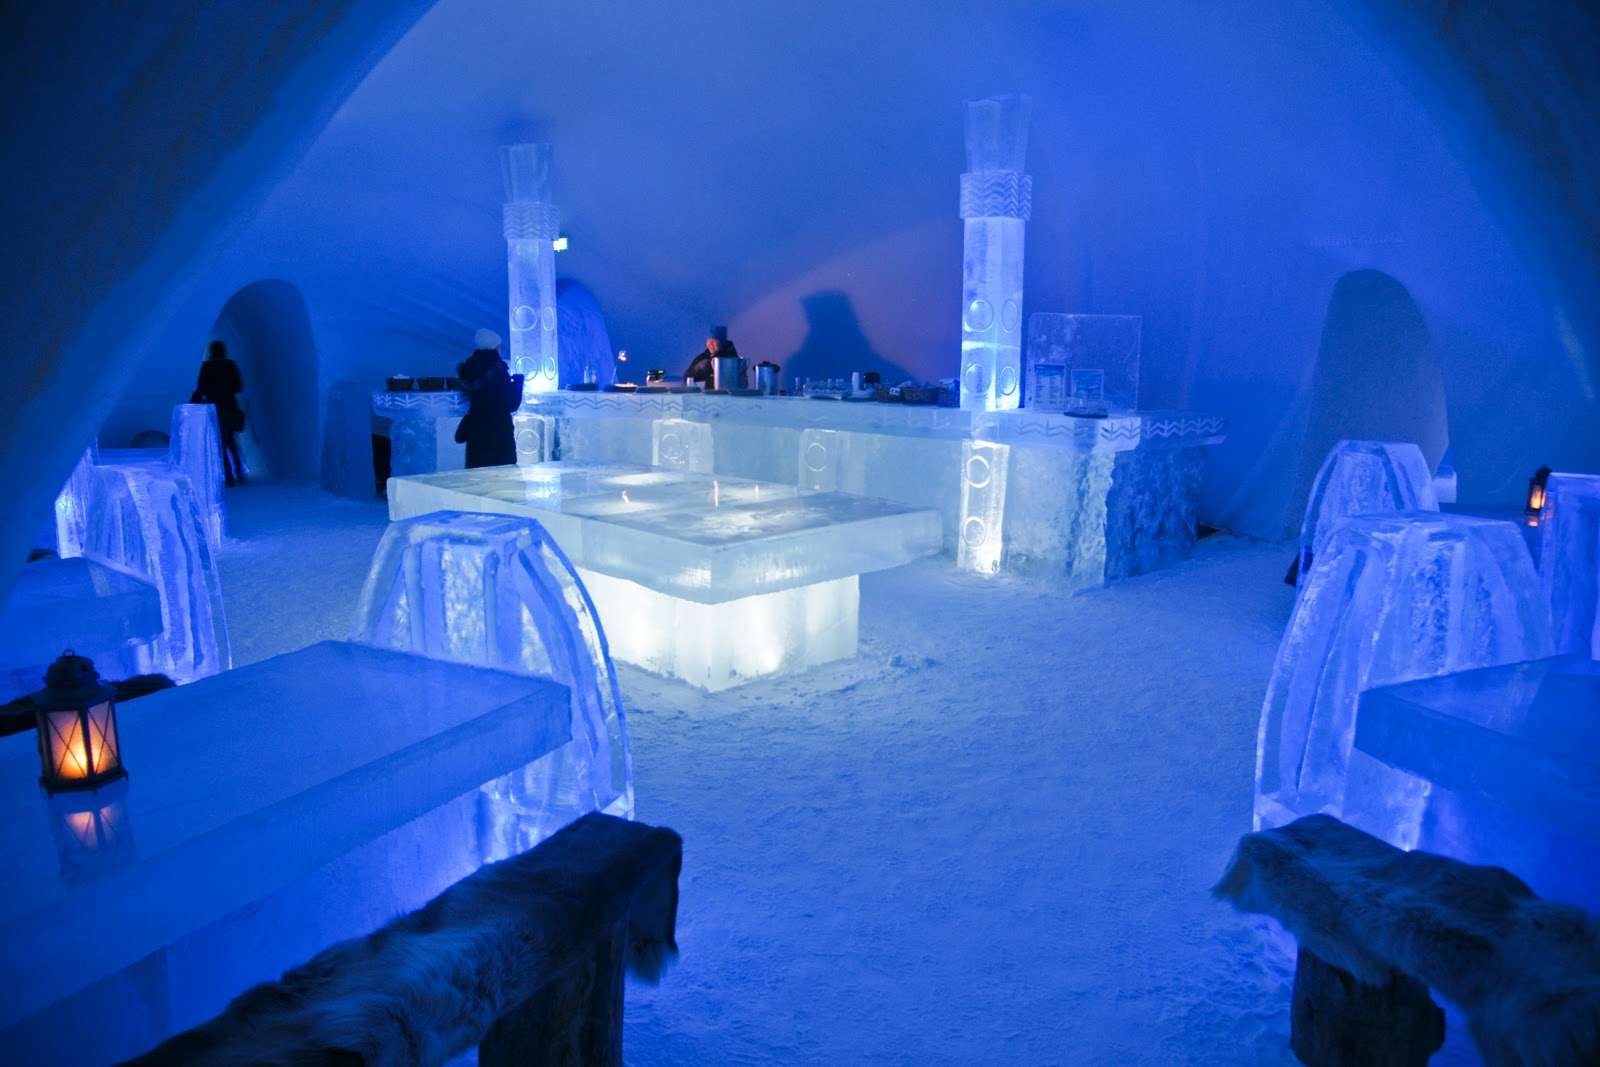 Ice Hotel Dining Area – Thought - 183.7KB